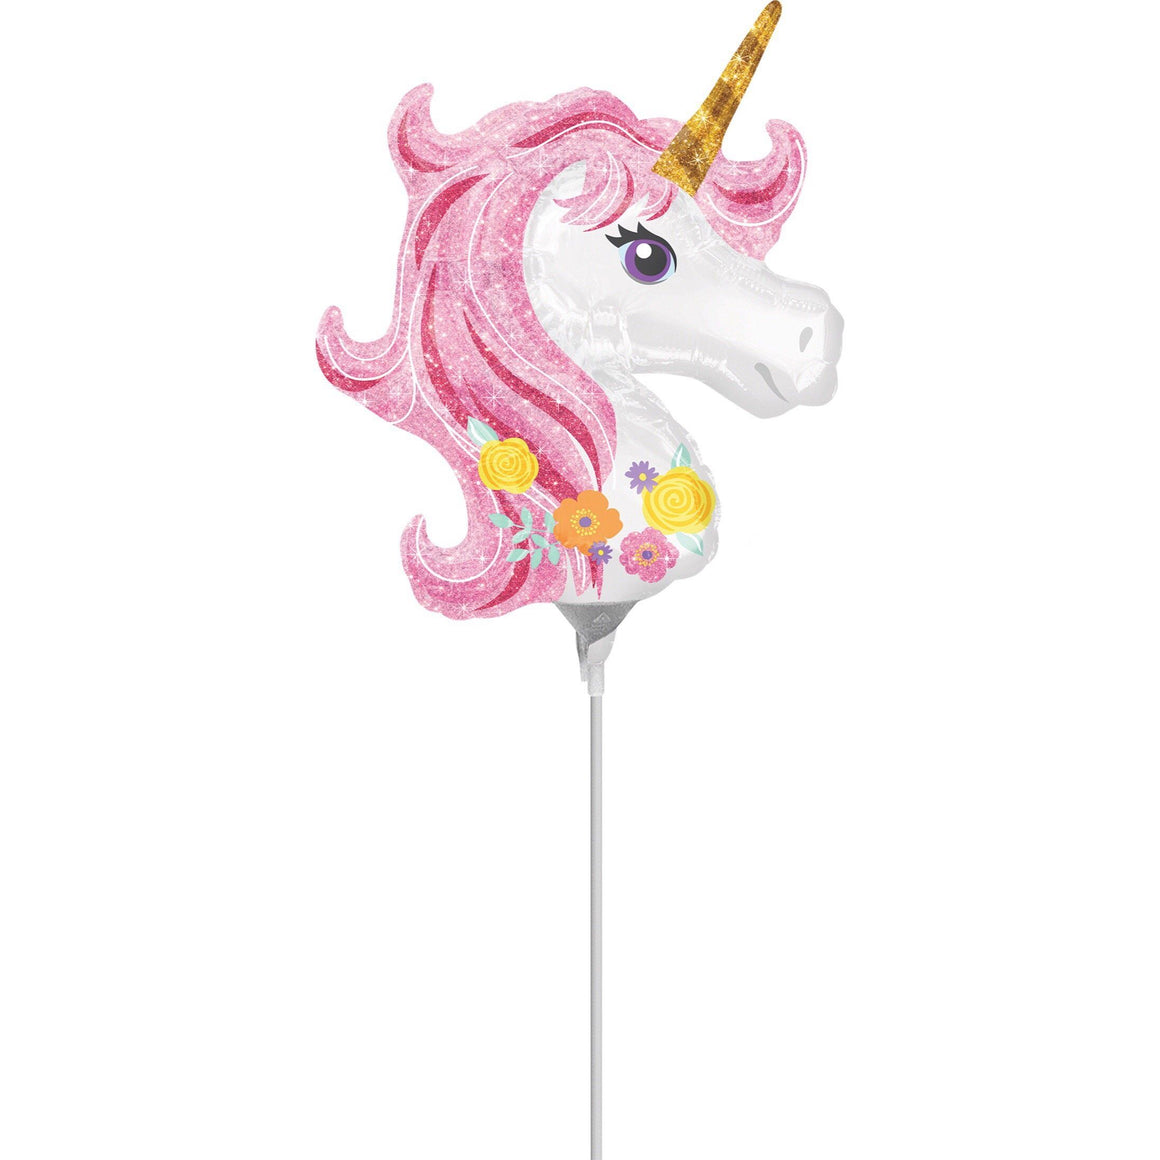 BALLOONS - UNICORN WAND FLORAL (Pre-Filled - Pick-Up Only), Balloons, Anagram - Bon + Co. Party Studio